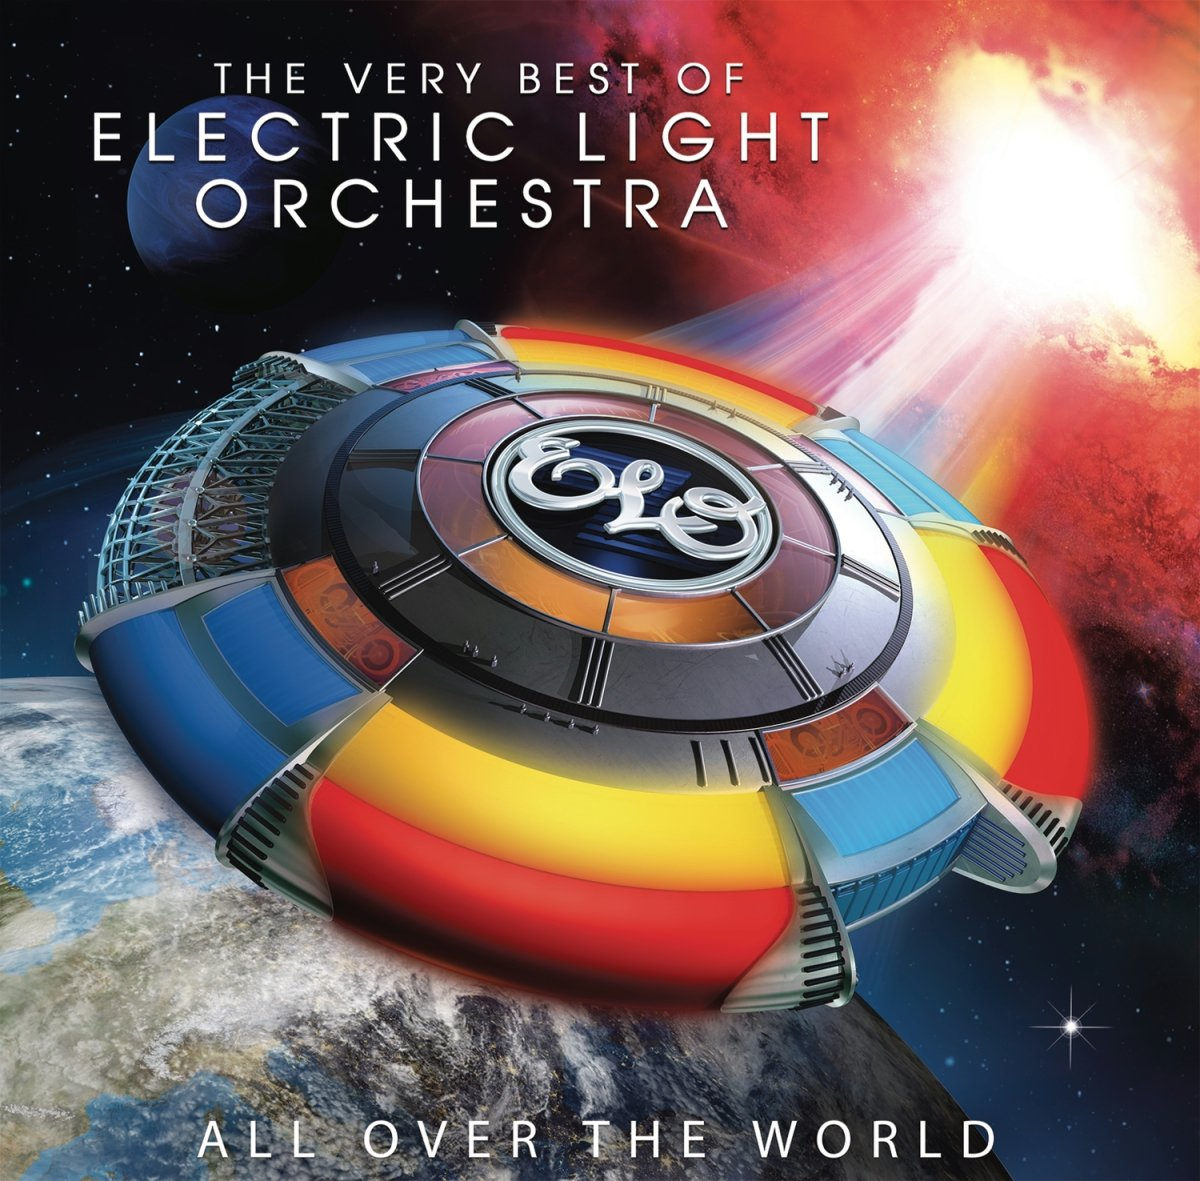 Elo - All Over the World: The Very Best of Electric Light Orchestra - Amazon.com Music